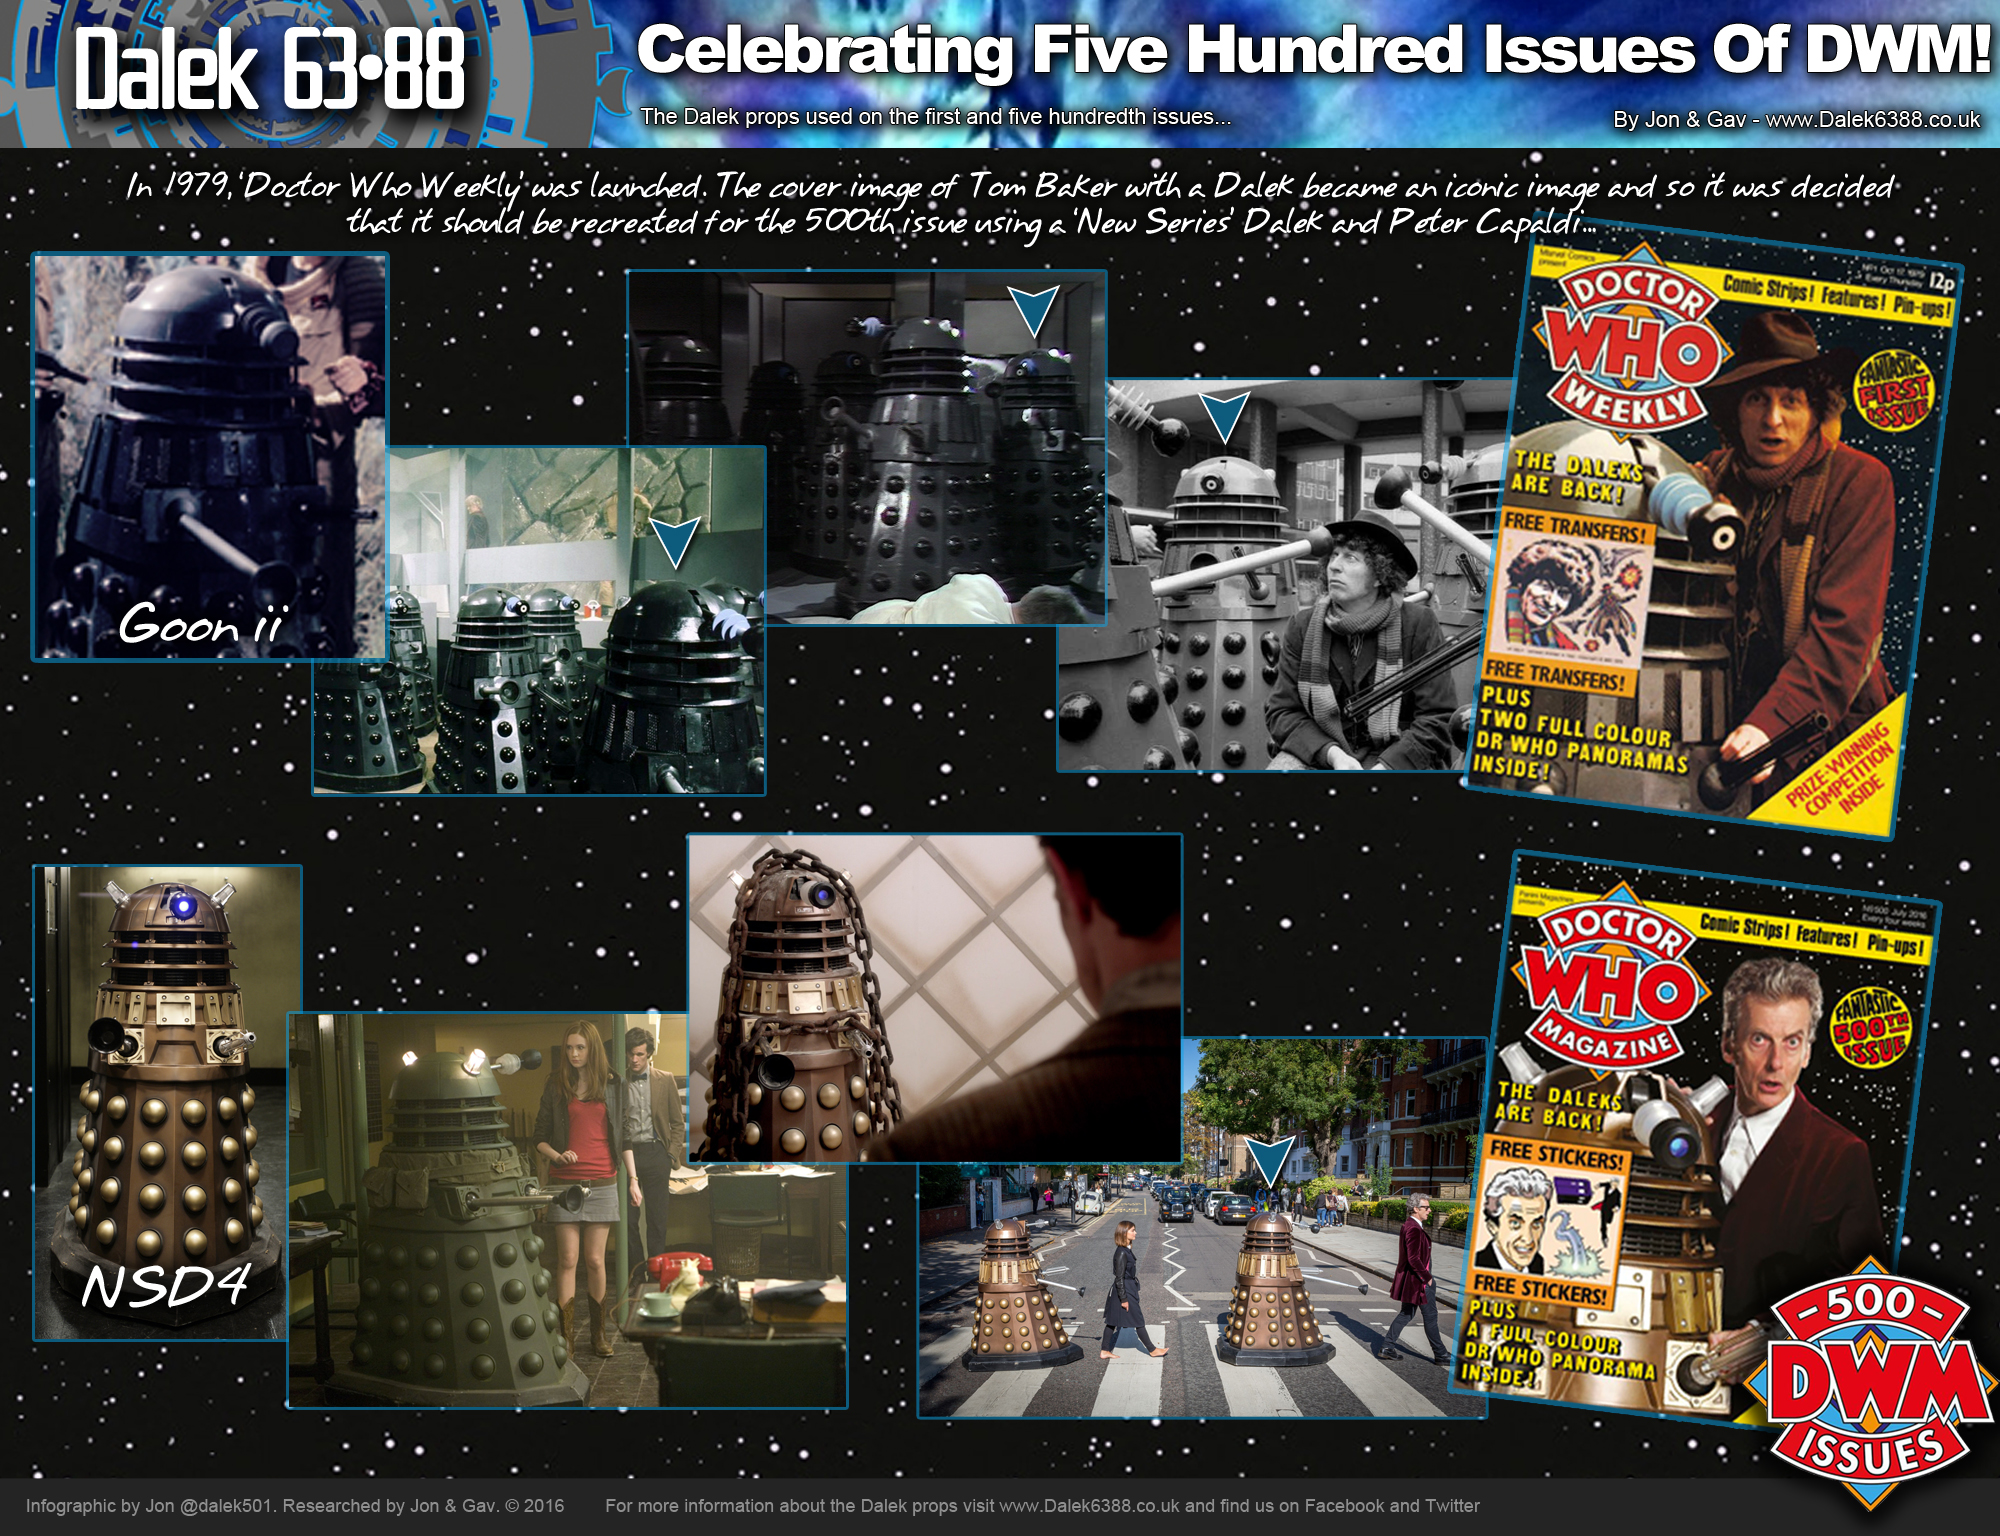 The props that appeared on DWM#01 and DWM#500